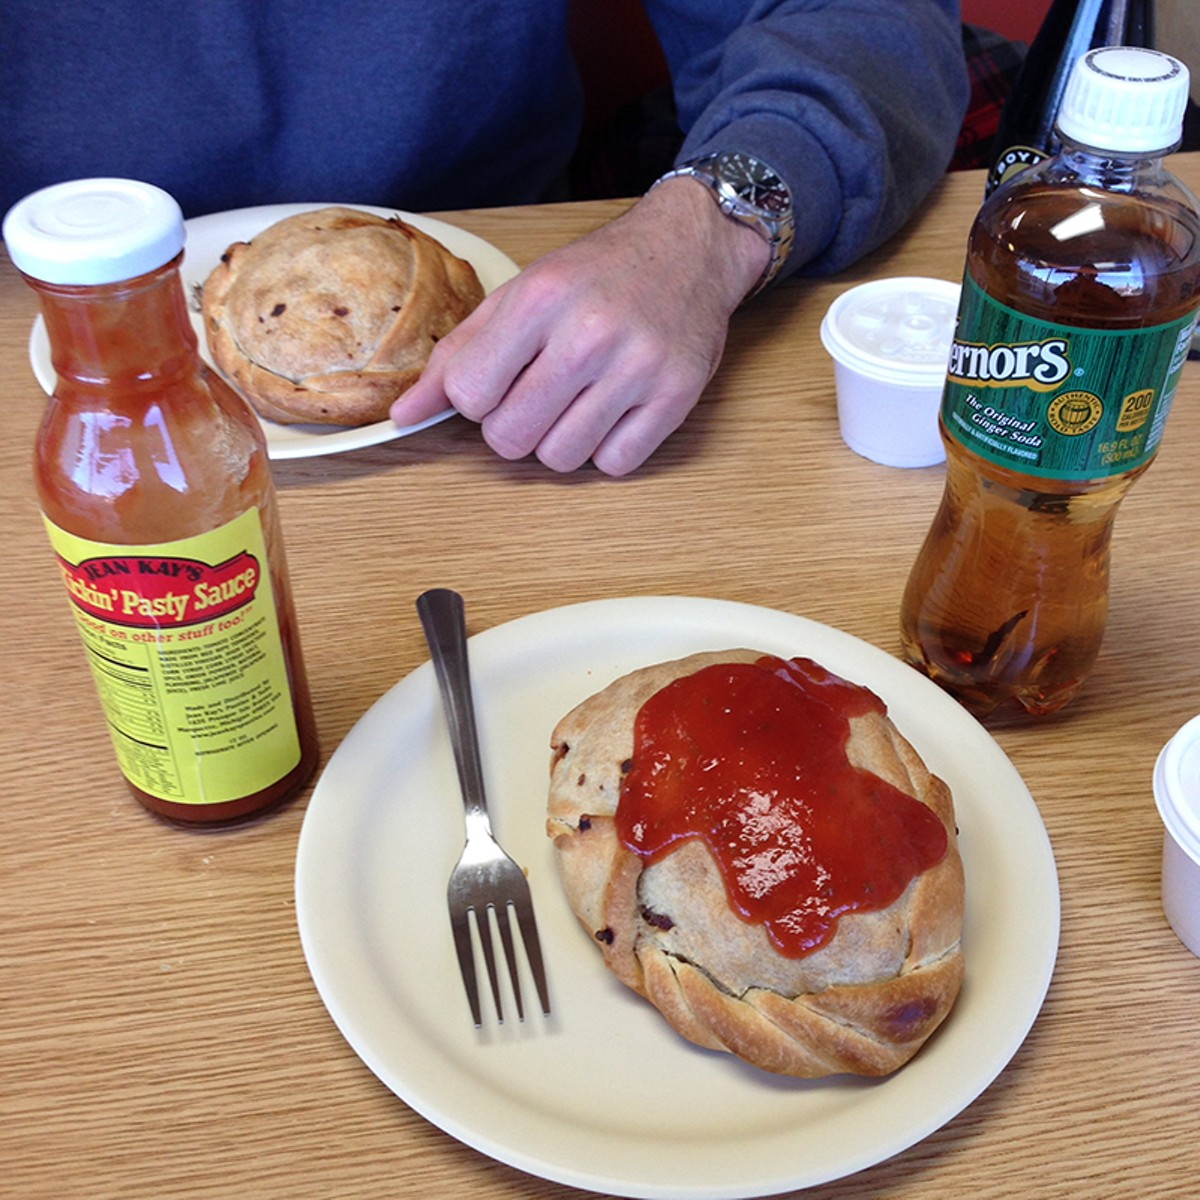 In the U.P., you have to choose between ketchup or gravy For your pasty.